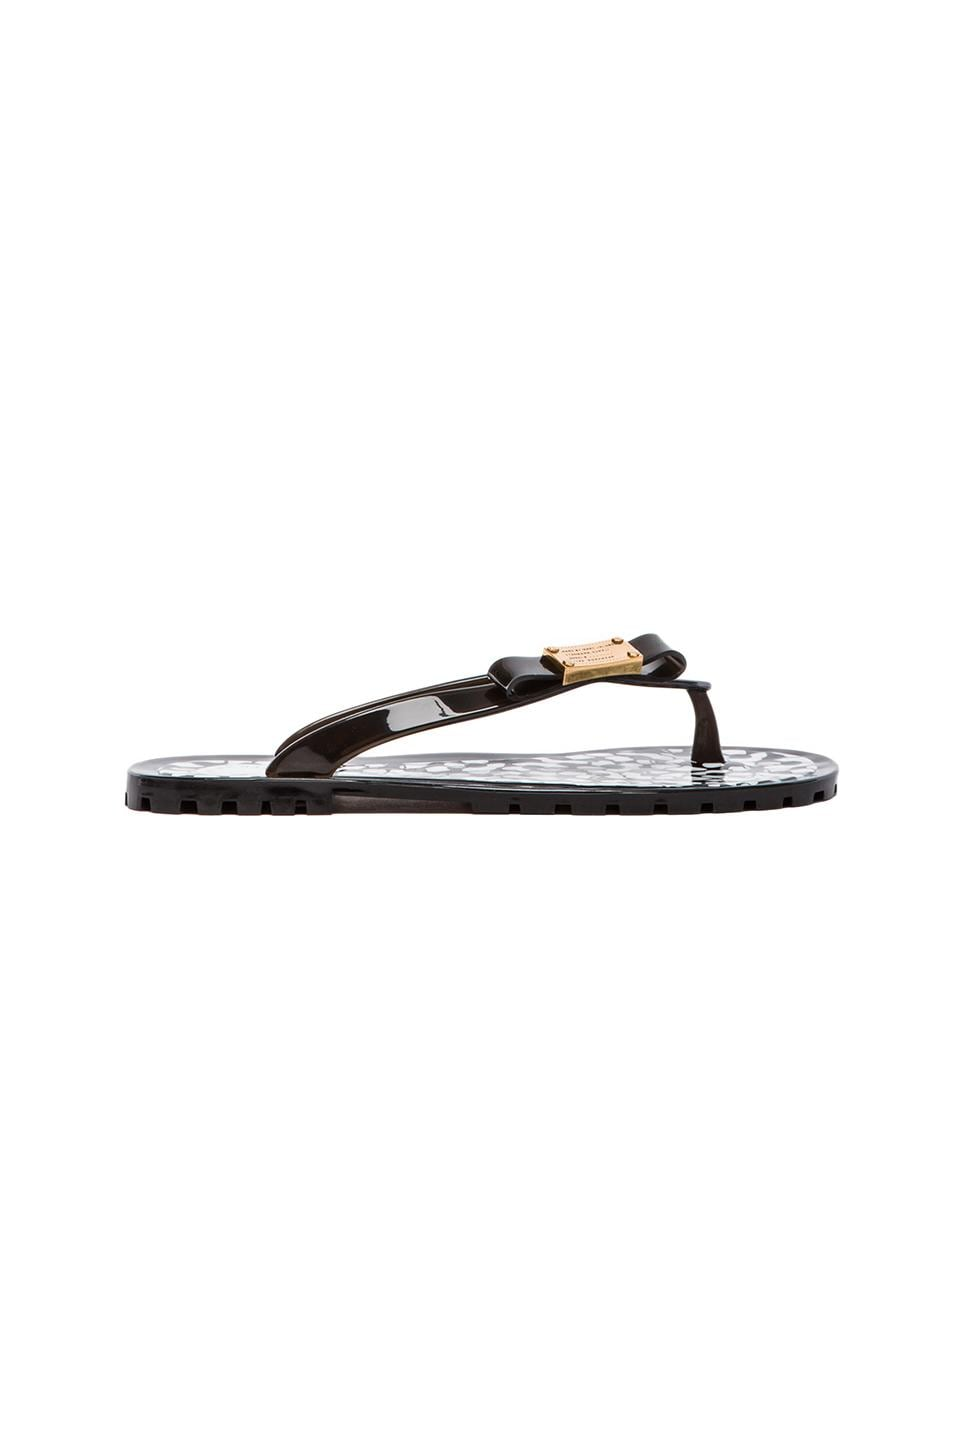 Marc by Marc Jacobs Flip Flop Jelly in Black